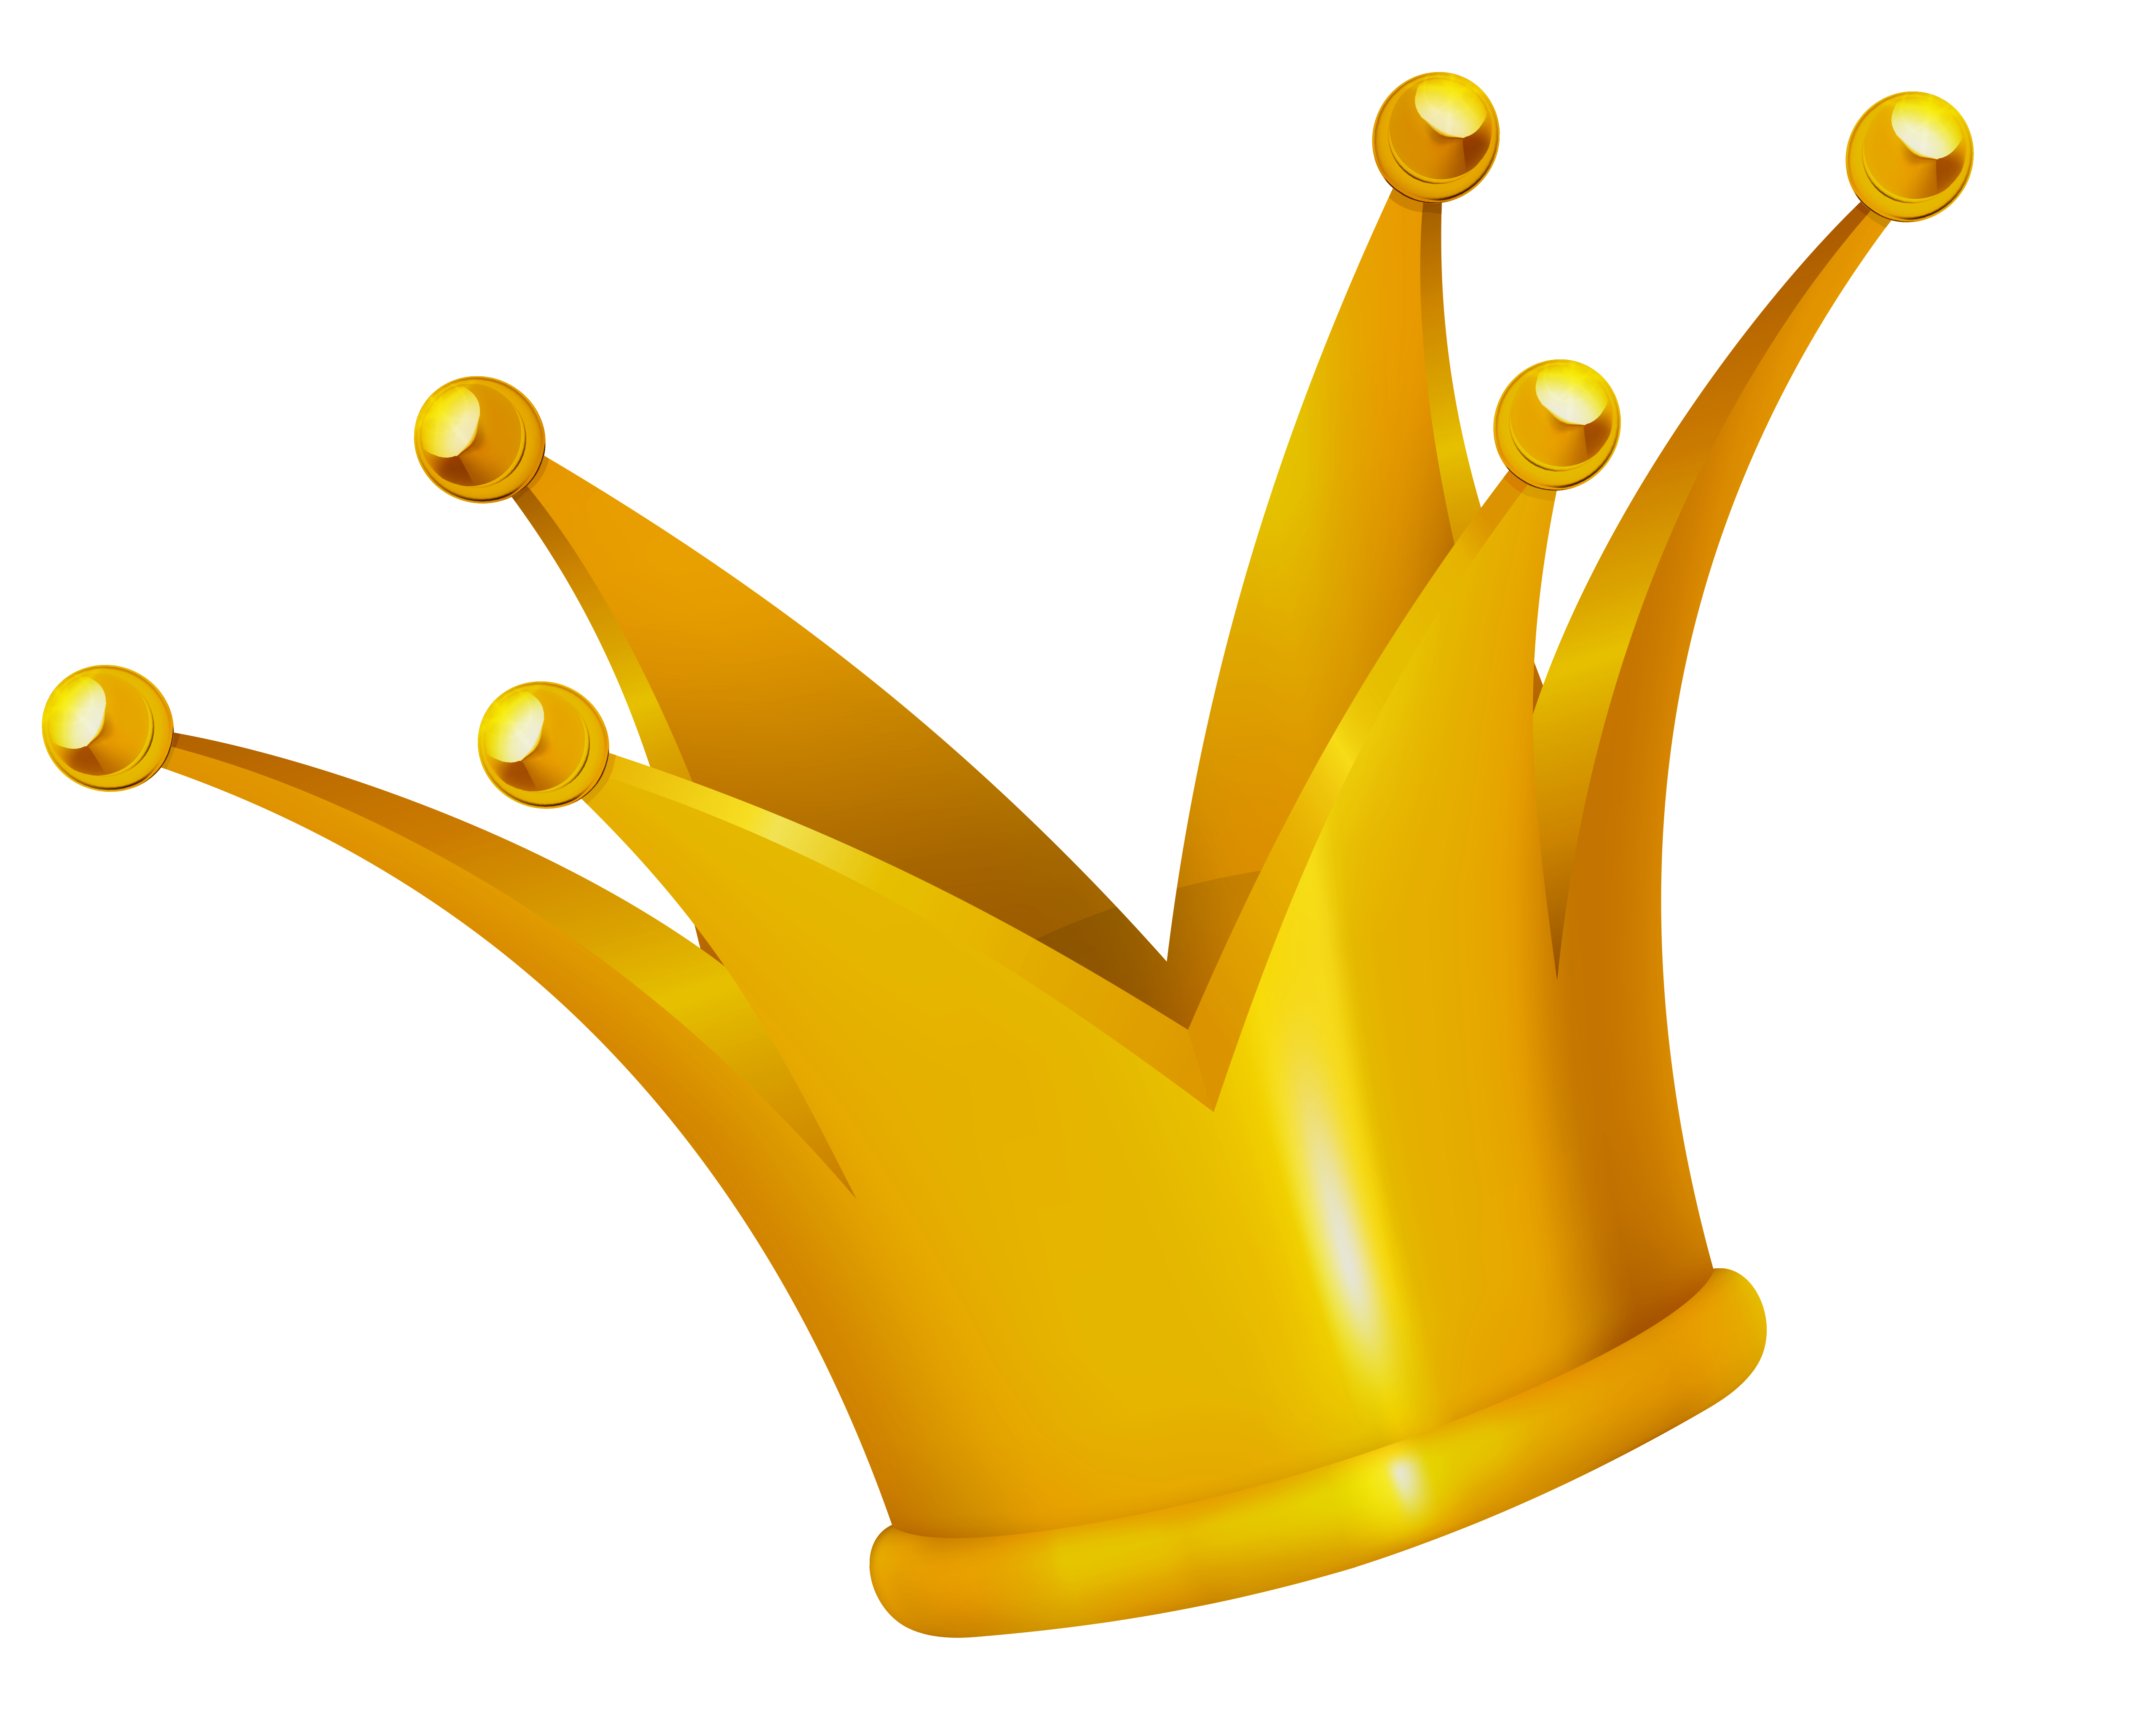 Free Cartoon Crown Transparent Background, Download Free.